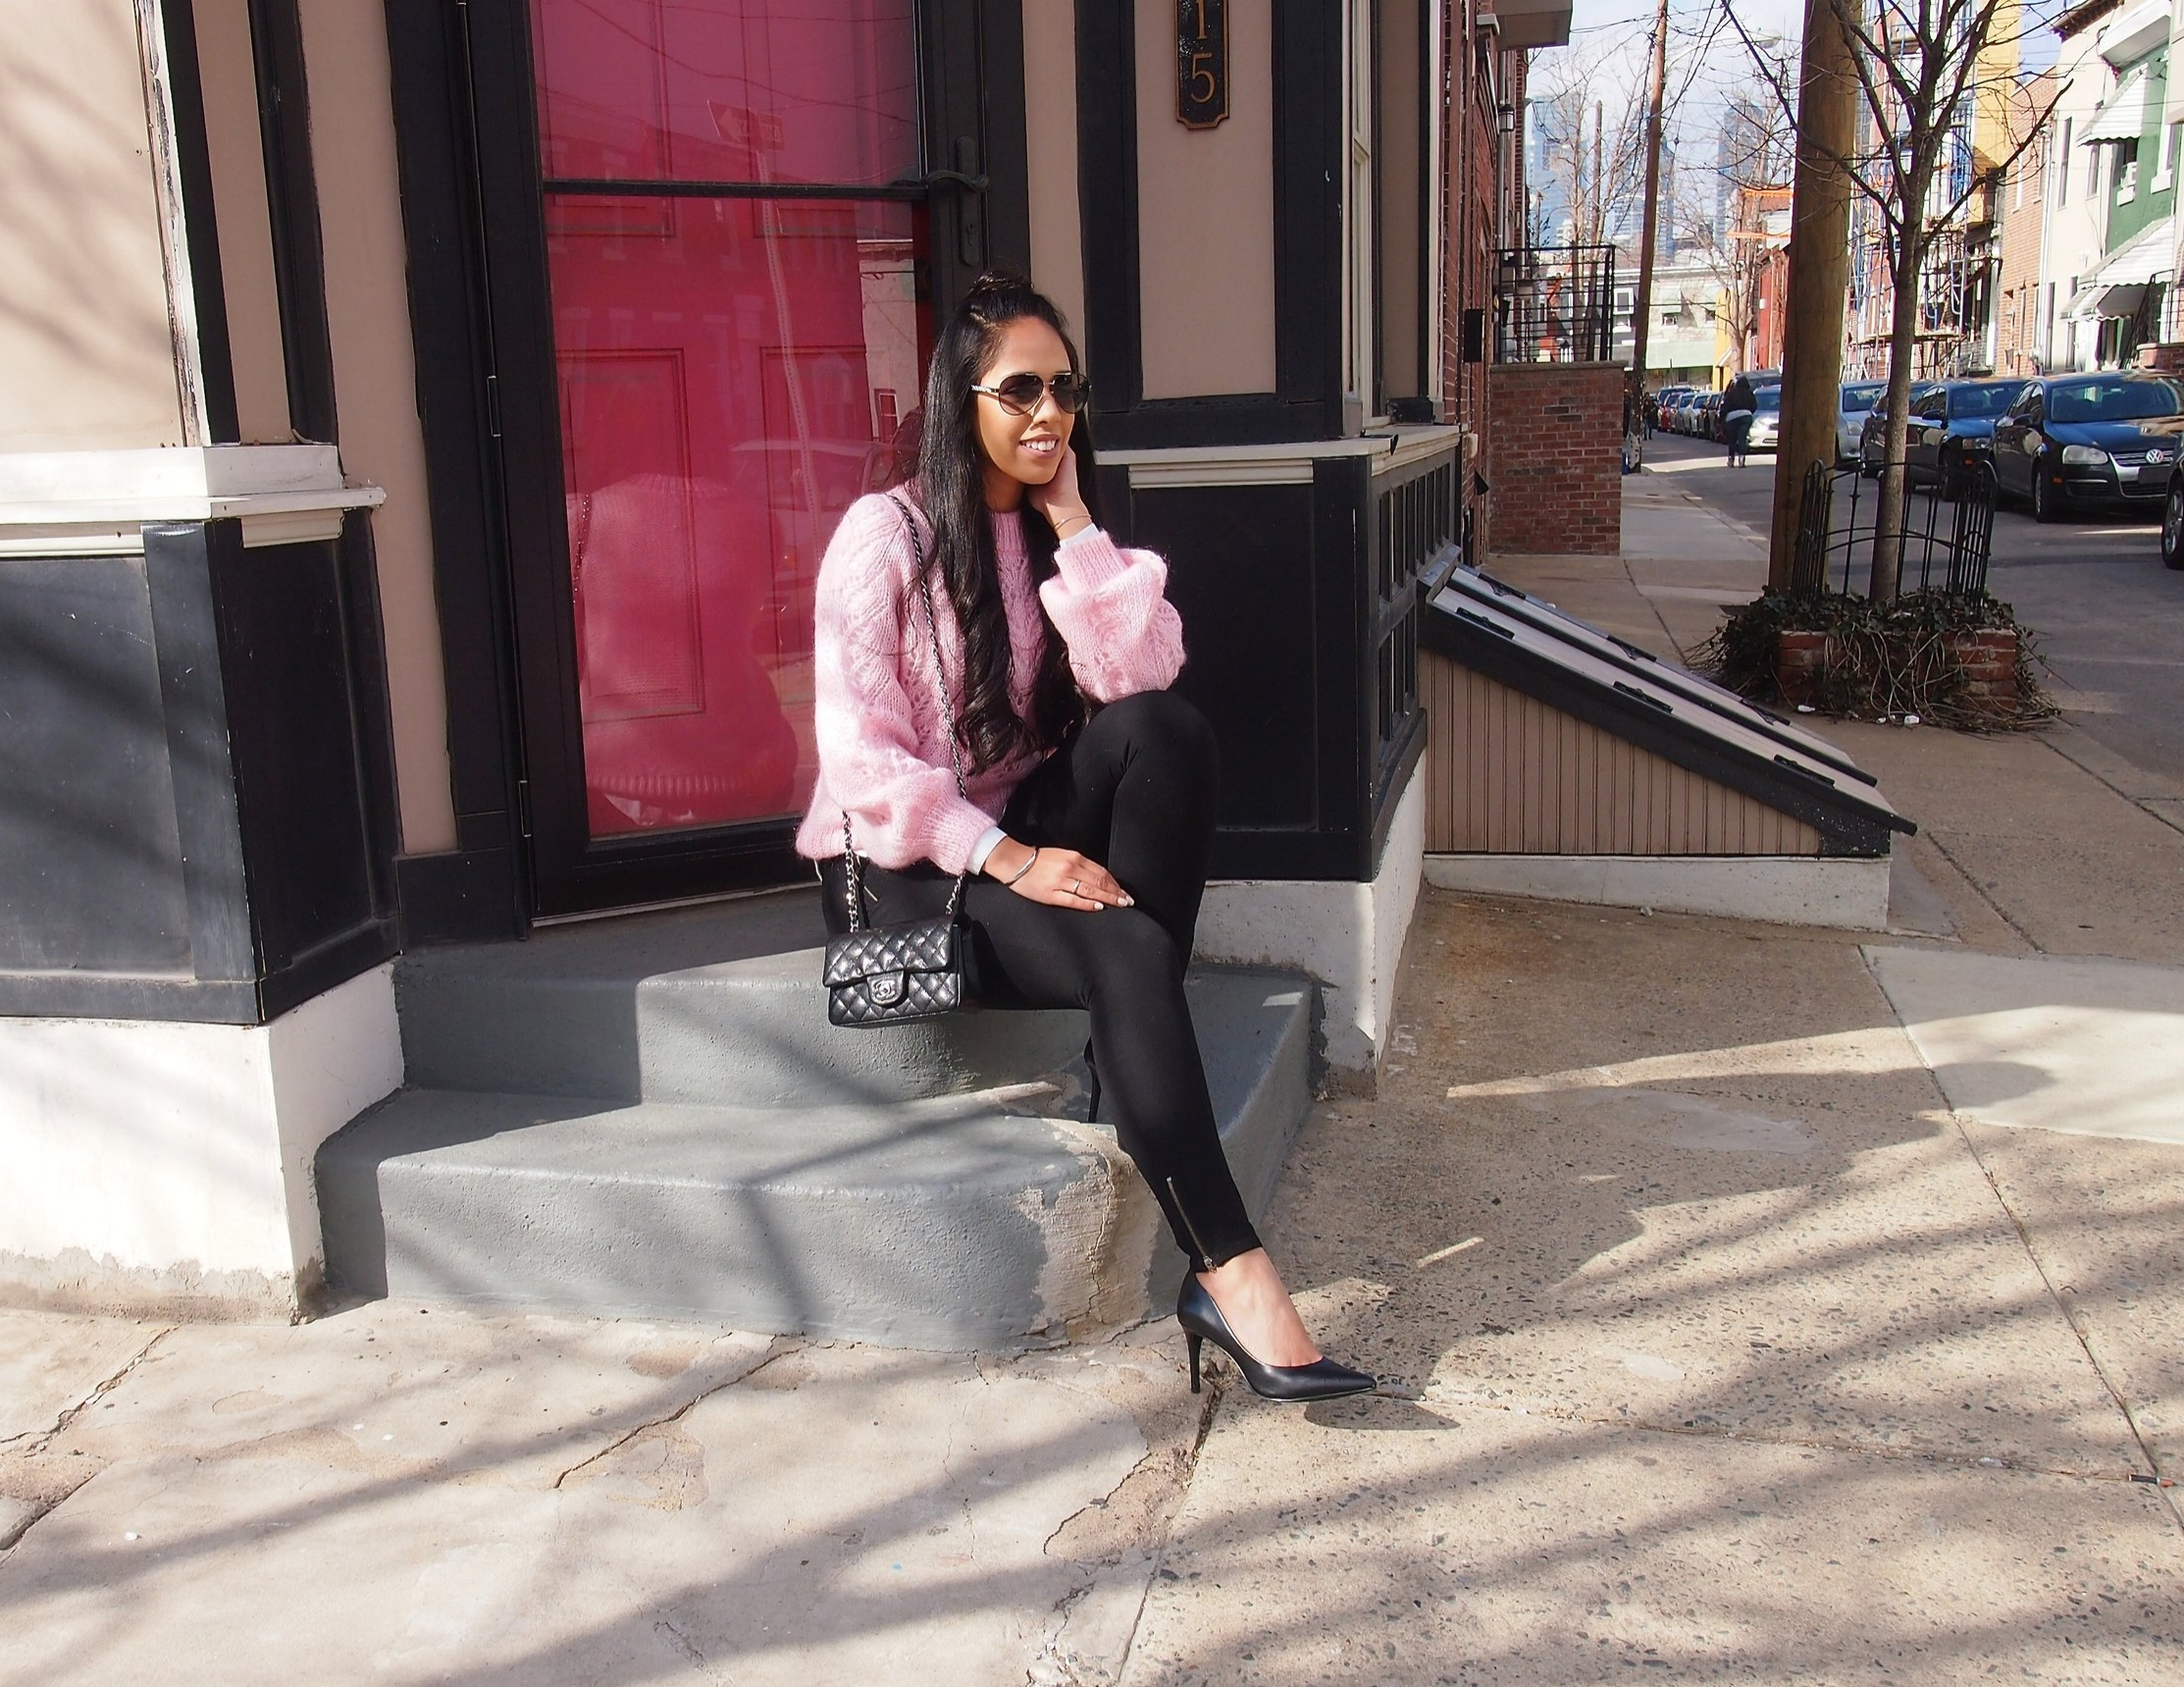 The-Pink-Sweater-You-Need-For-Spring.jpg